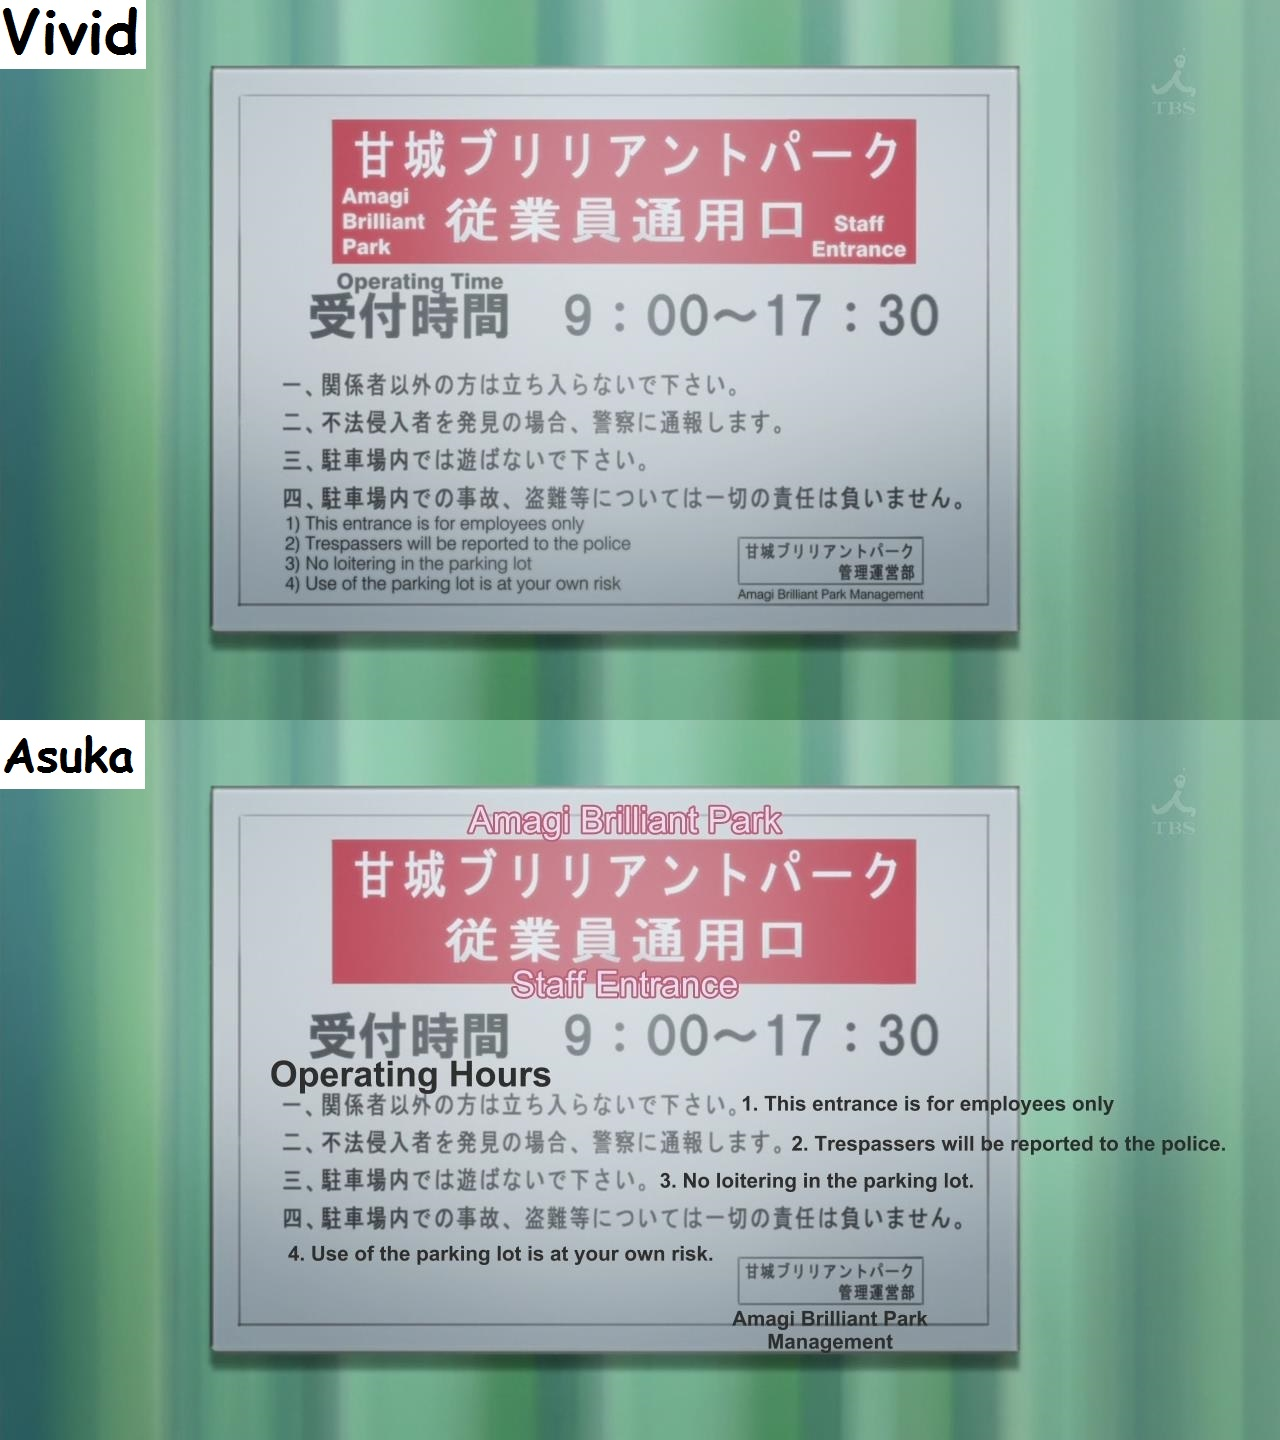 Amagi Brilliant Park - Asuka Subs vs Vivid - Typesetting